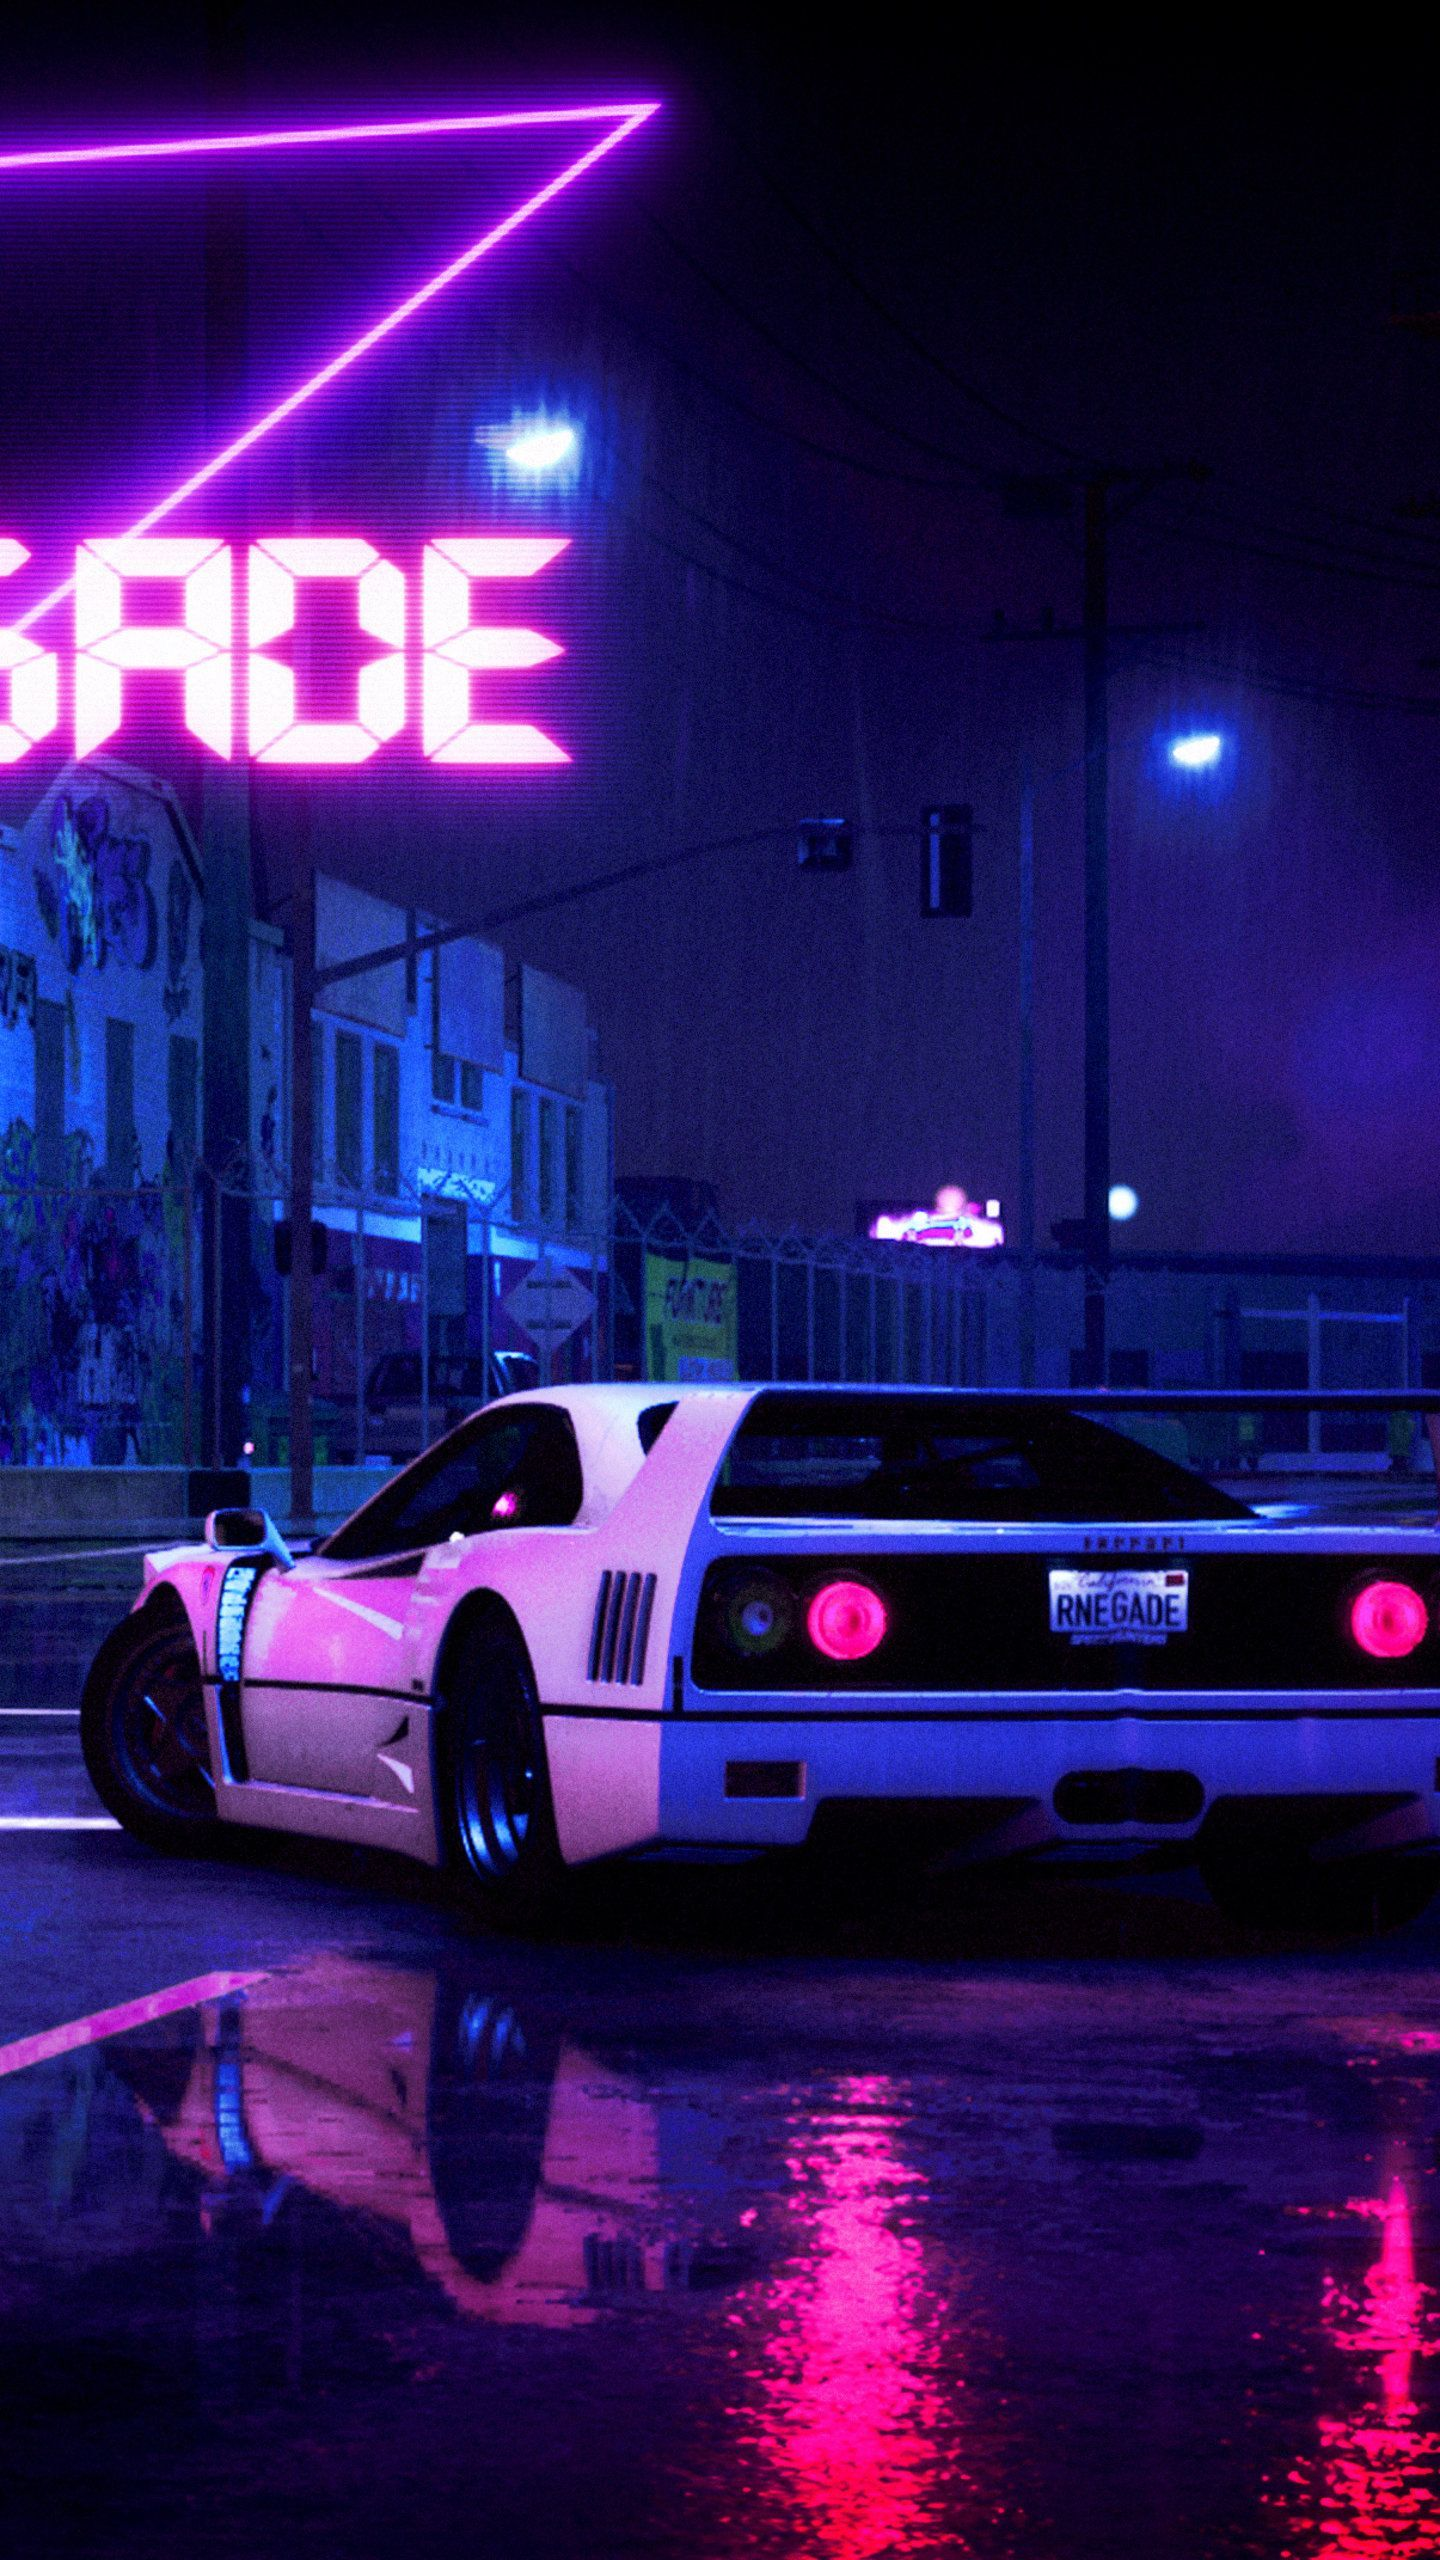 The wallpaper trend is going strong. Retrowave Aesthetic Car Wallpapers Wallpaper Cave